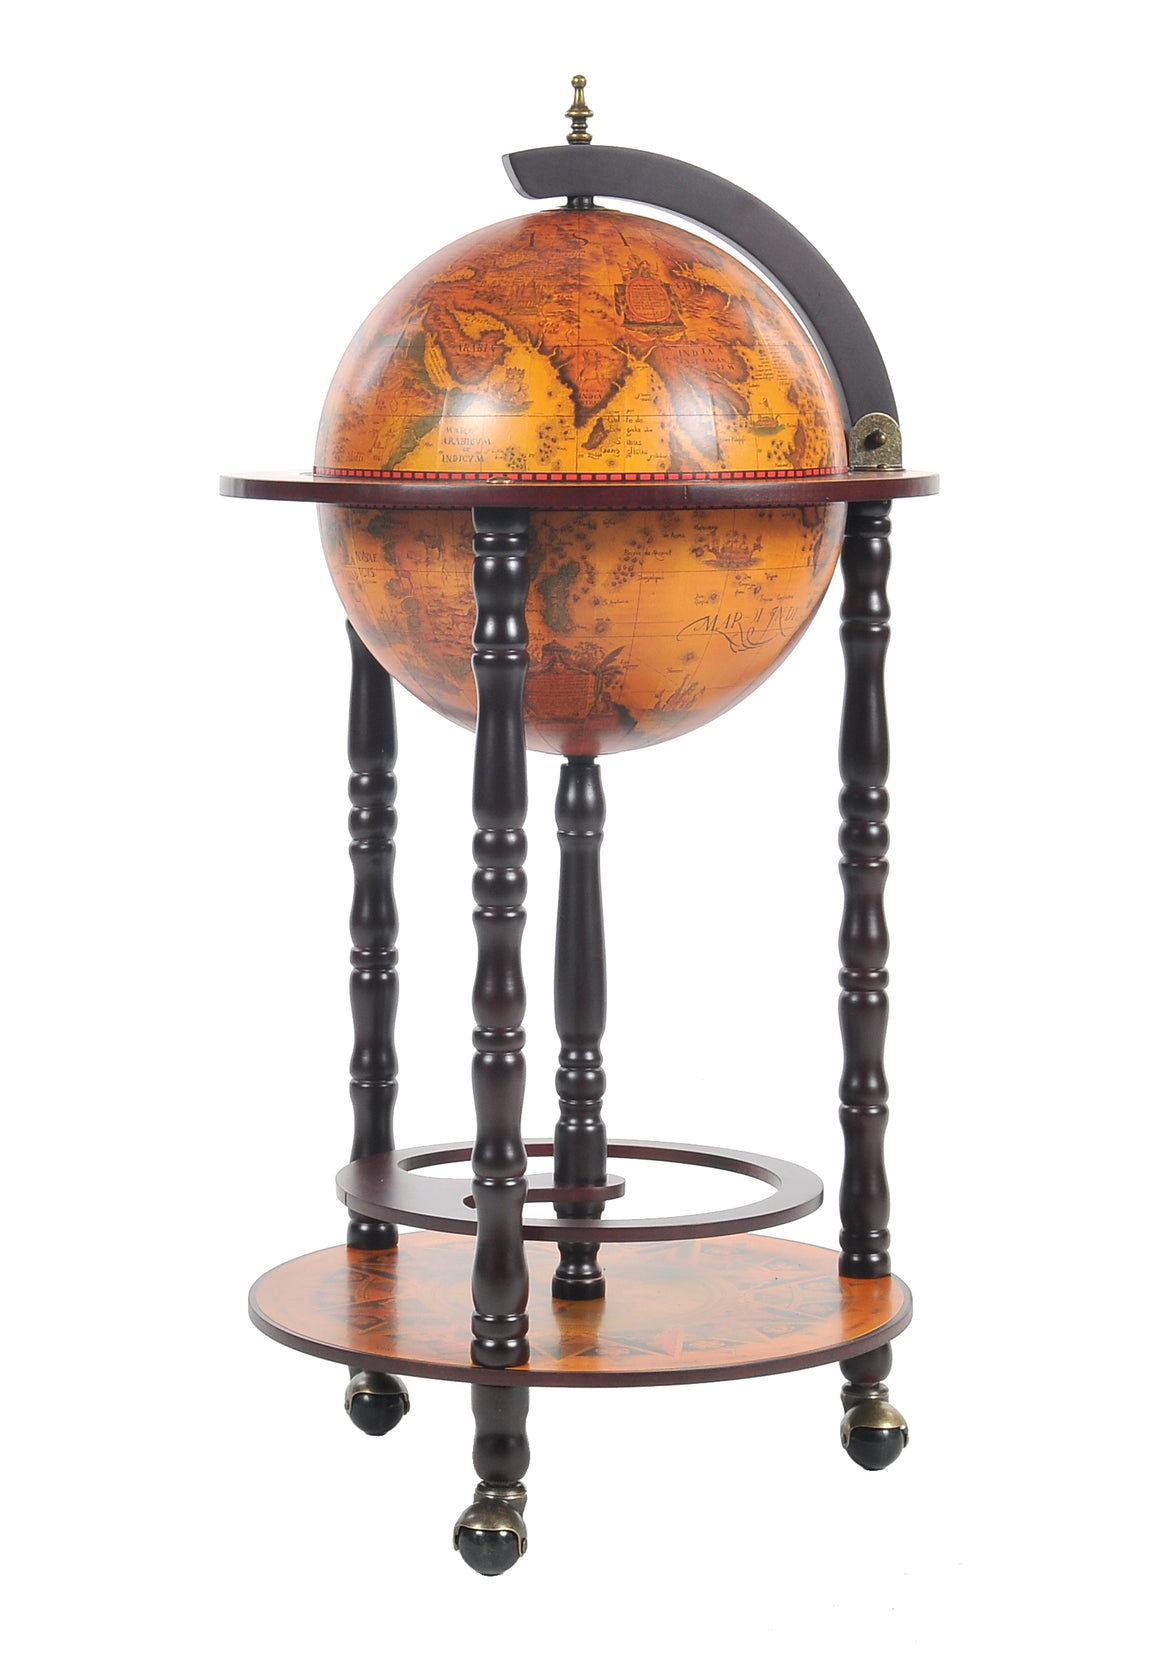 Old Modern Handicrafts World Globe Bar Red Table 330mm 4 Legs Stand - Decor and Gifts Galore